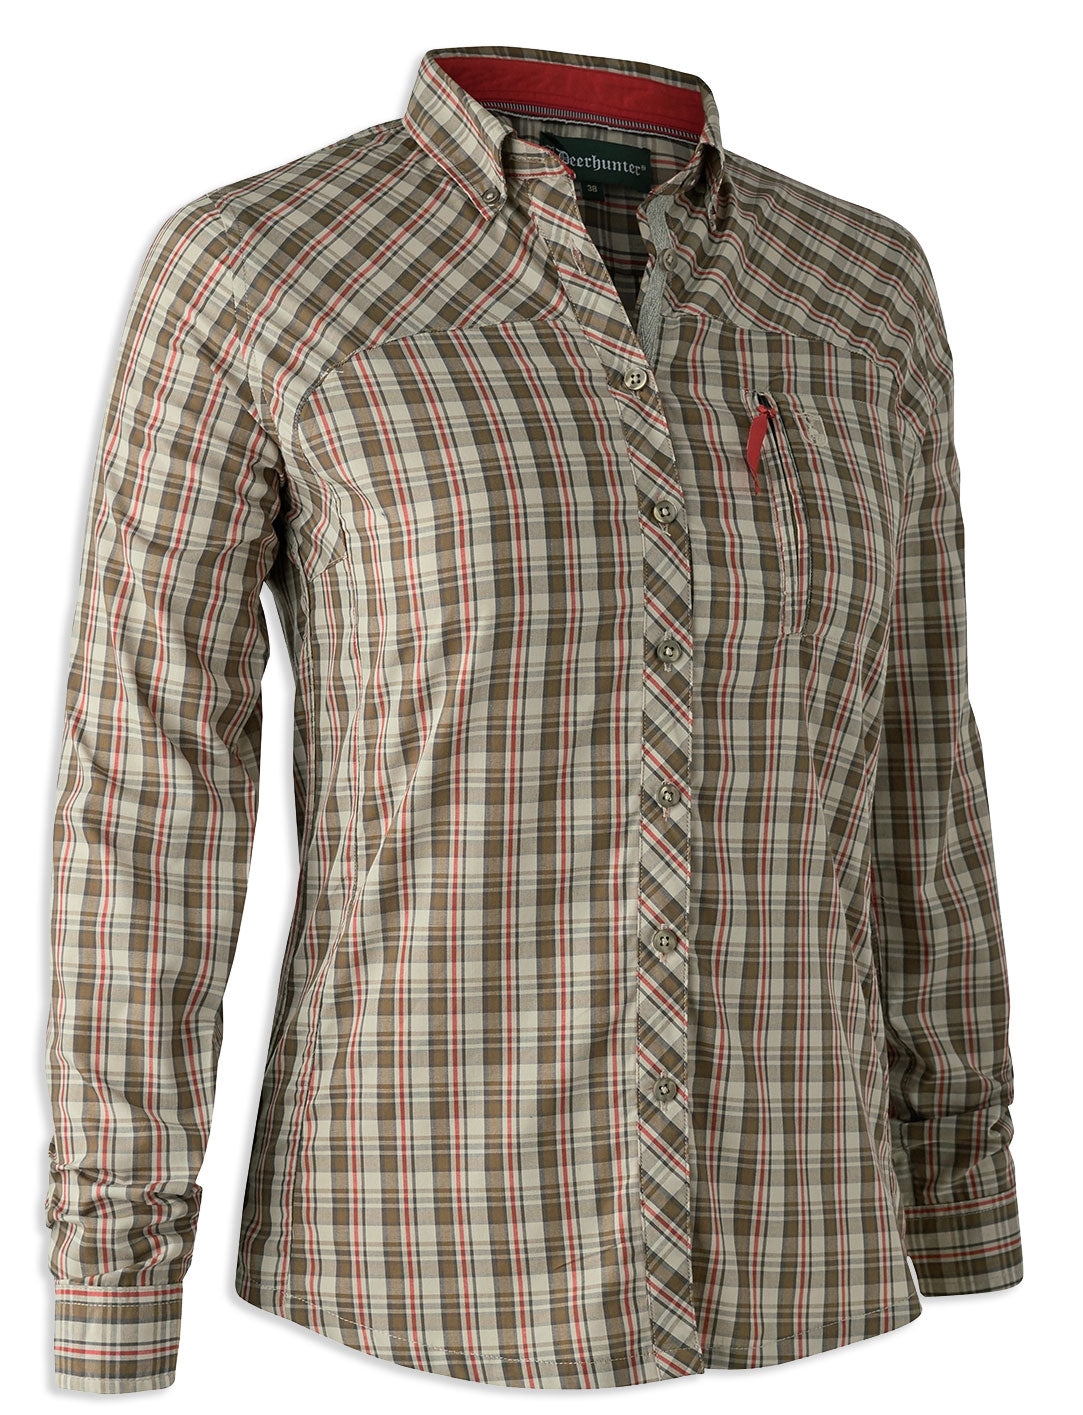 Deerhunter Lady Heather Shirt Red Green Check